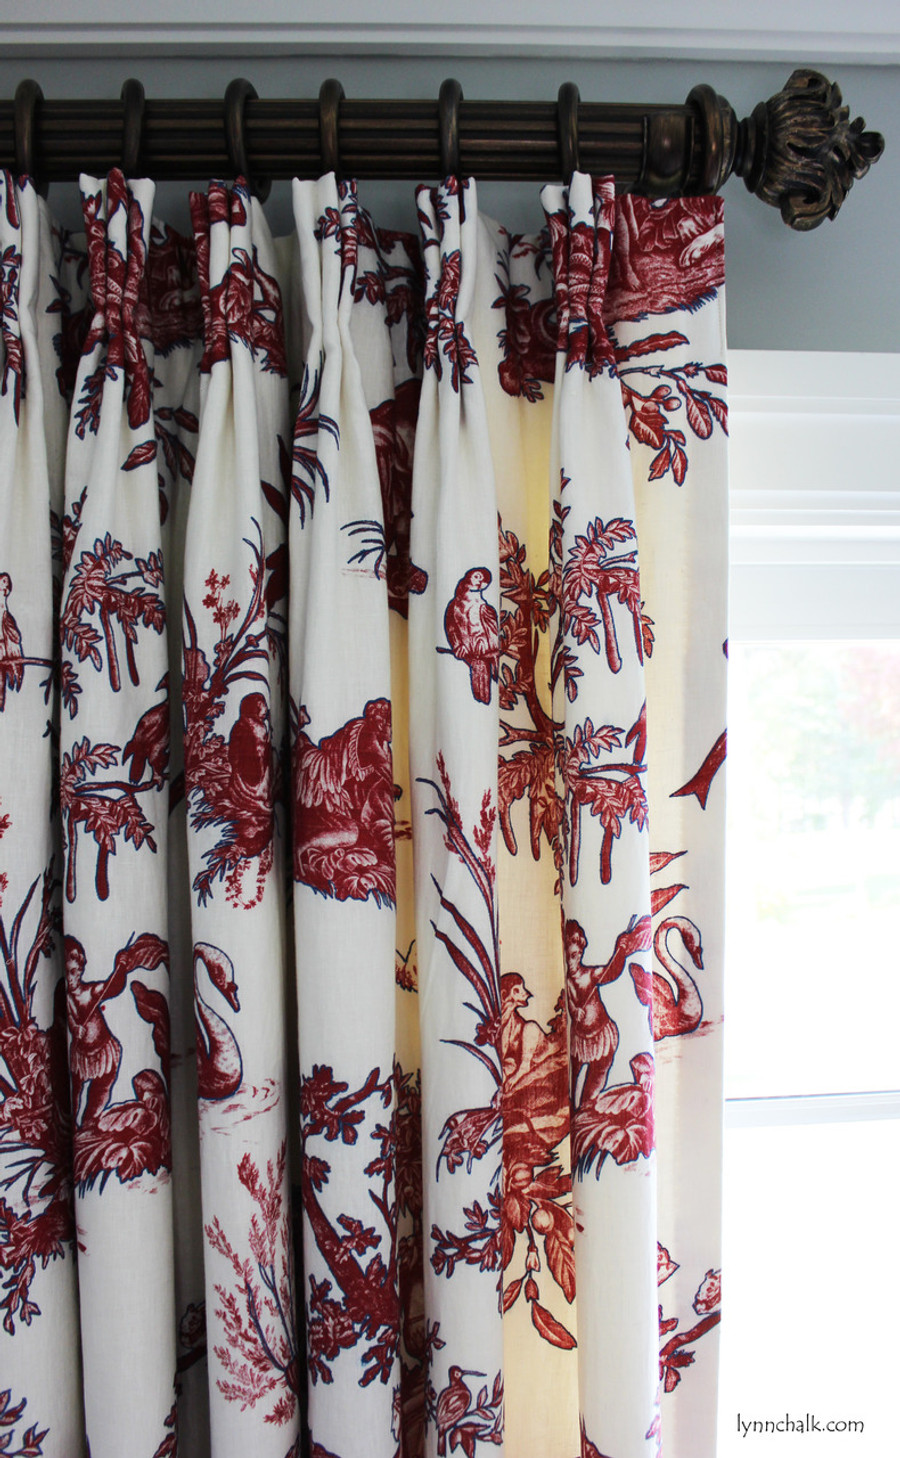 "Custom Double Width Drapes by Lynn Chalk in Continenti Rouge/Prussian.  Paris Texas Hardware-Moonlight Finish; 2"" Diameter Fluted Rods - 24"" Long with Imogene Finials."